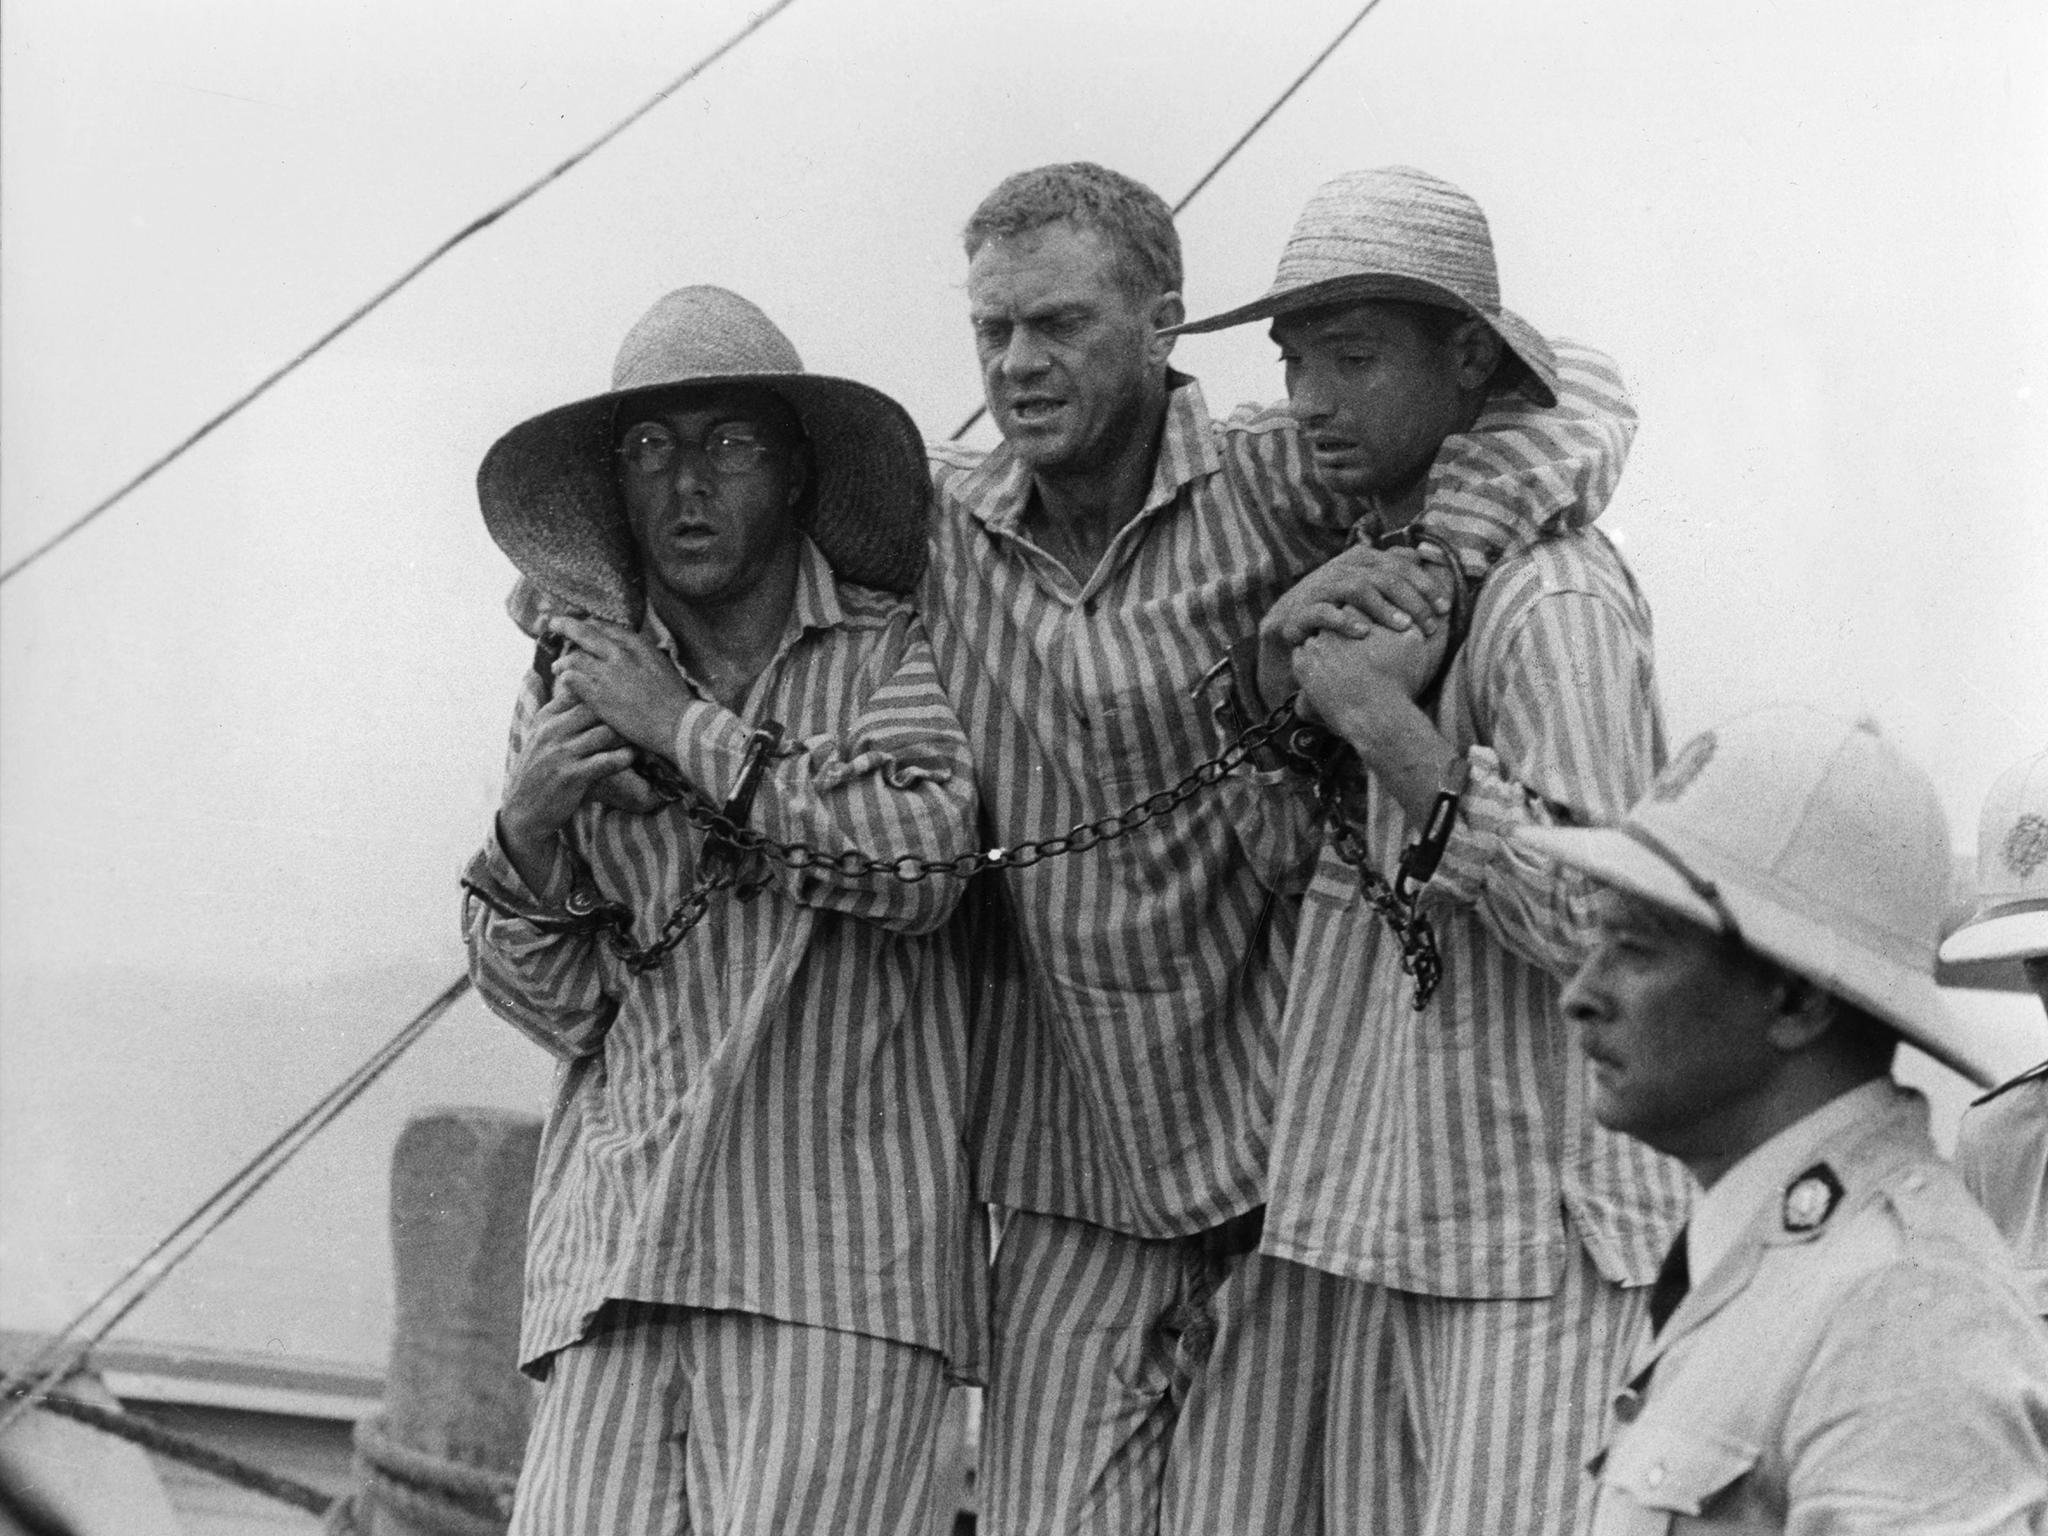 The King of Cool: 10 best Steve McQueen movies | The Independent